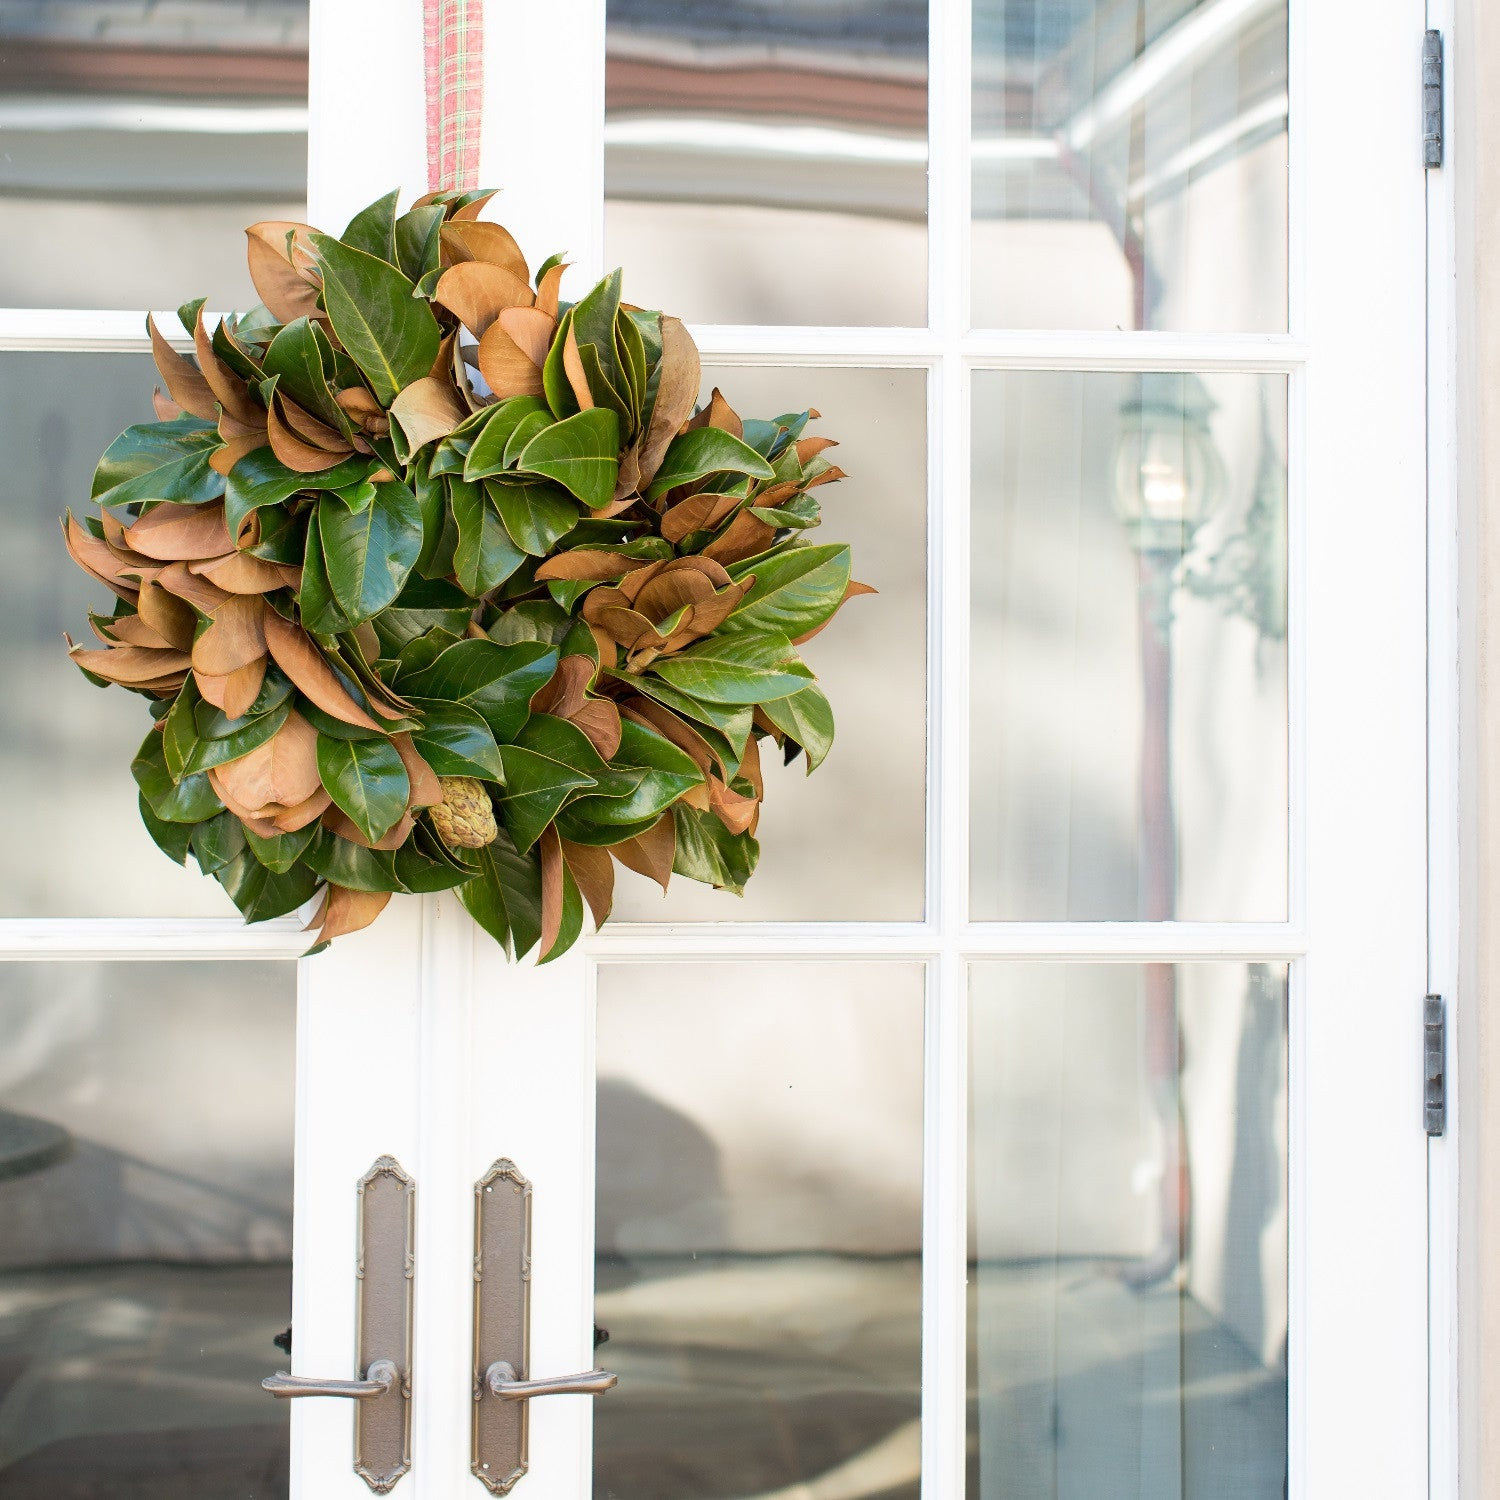 ... Golden Magnolia Wreath | Club Botanic | Verdant Green Magnolia Wreath  Hung Outside | Outdoor Magnolia